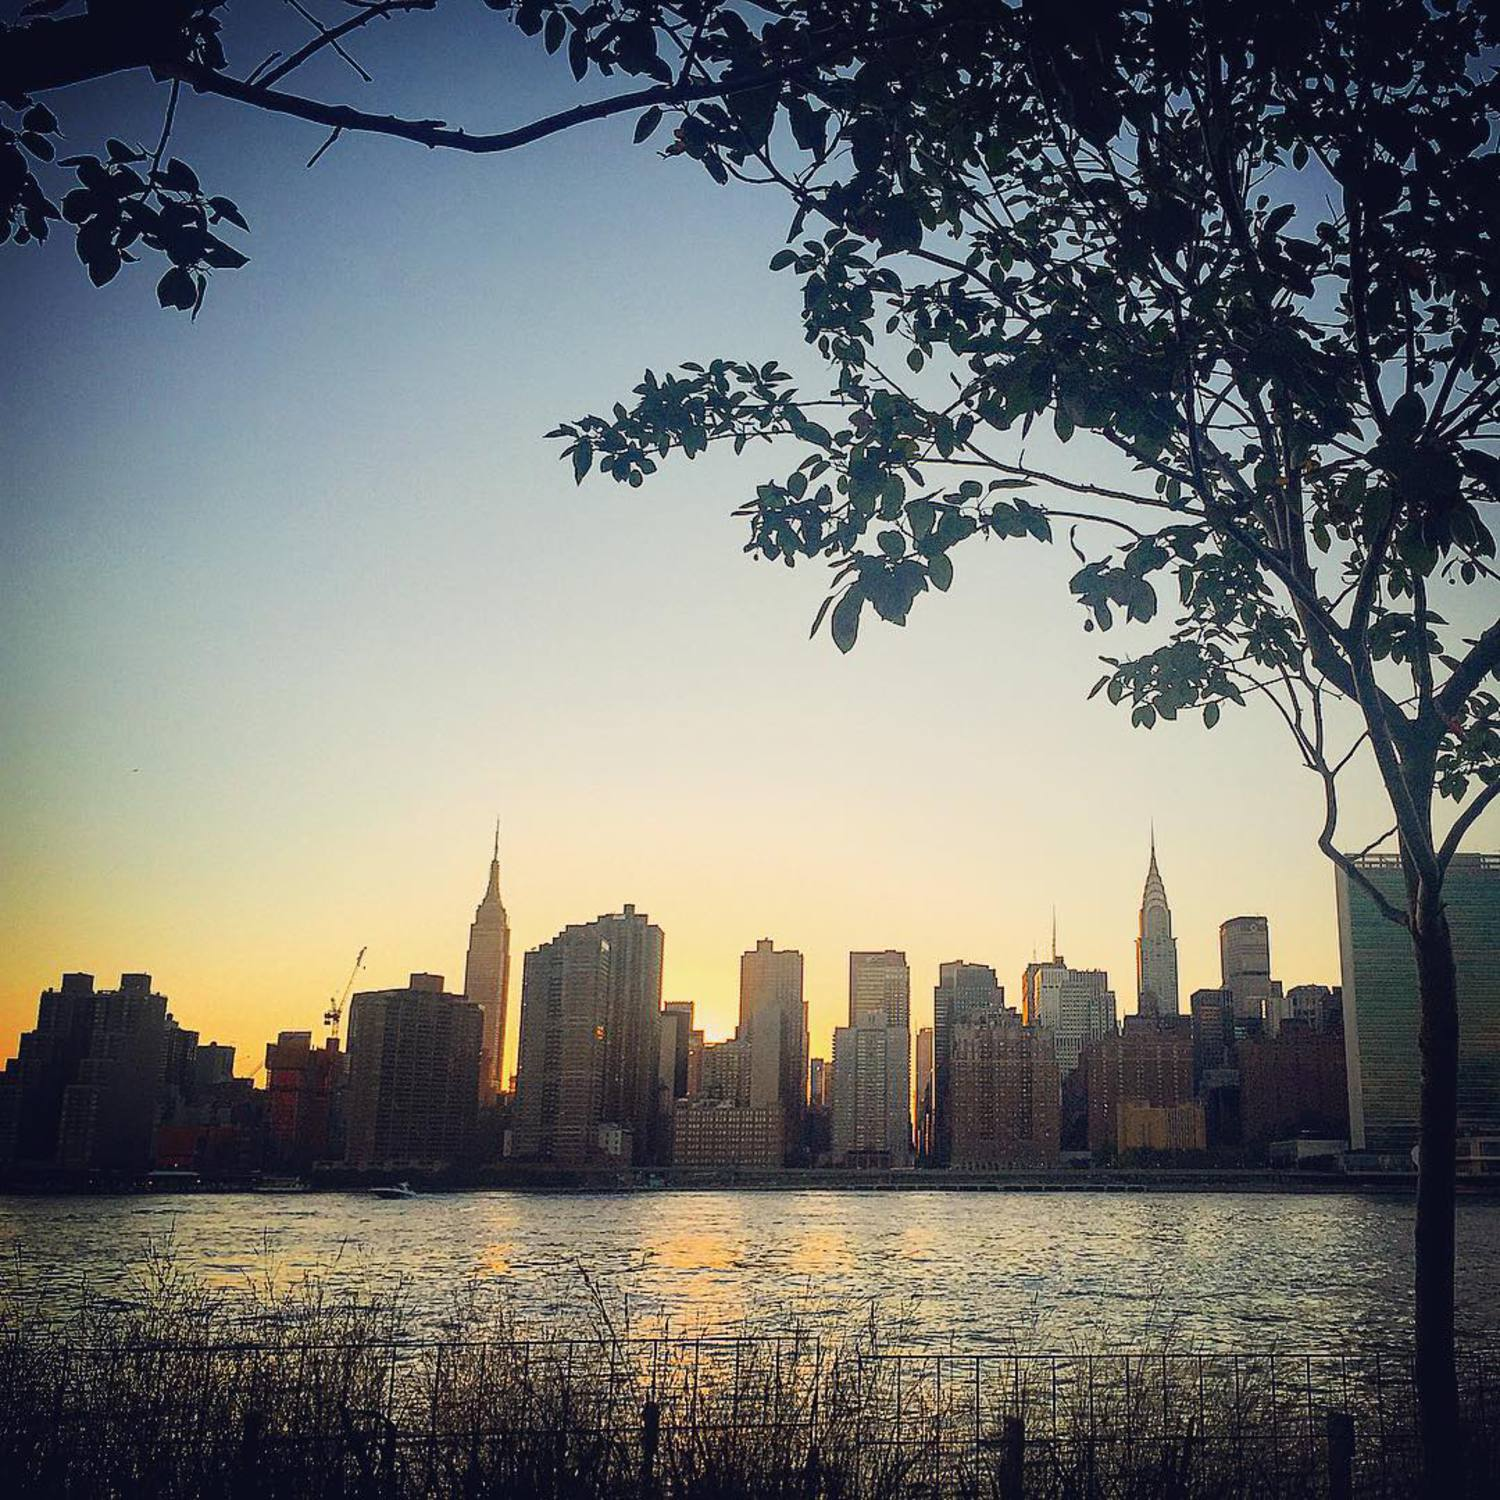 Rise and shine, New York! 🌇 #NYC #MidtownManhattan #CityViews #Sunrise #NYCSunrise #ILoveMyCity #PlaceICallHome